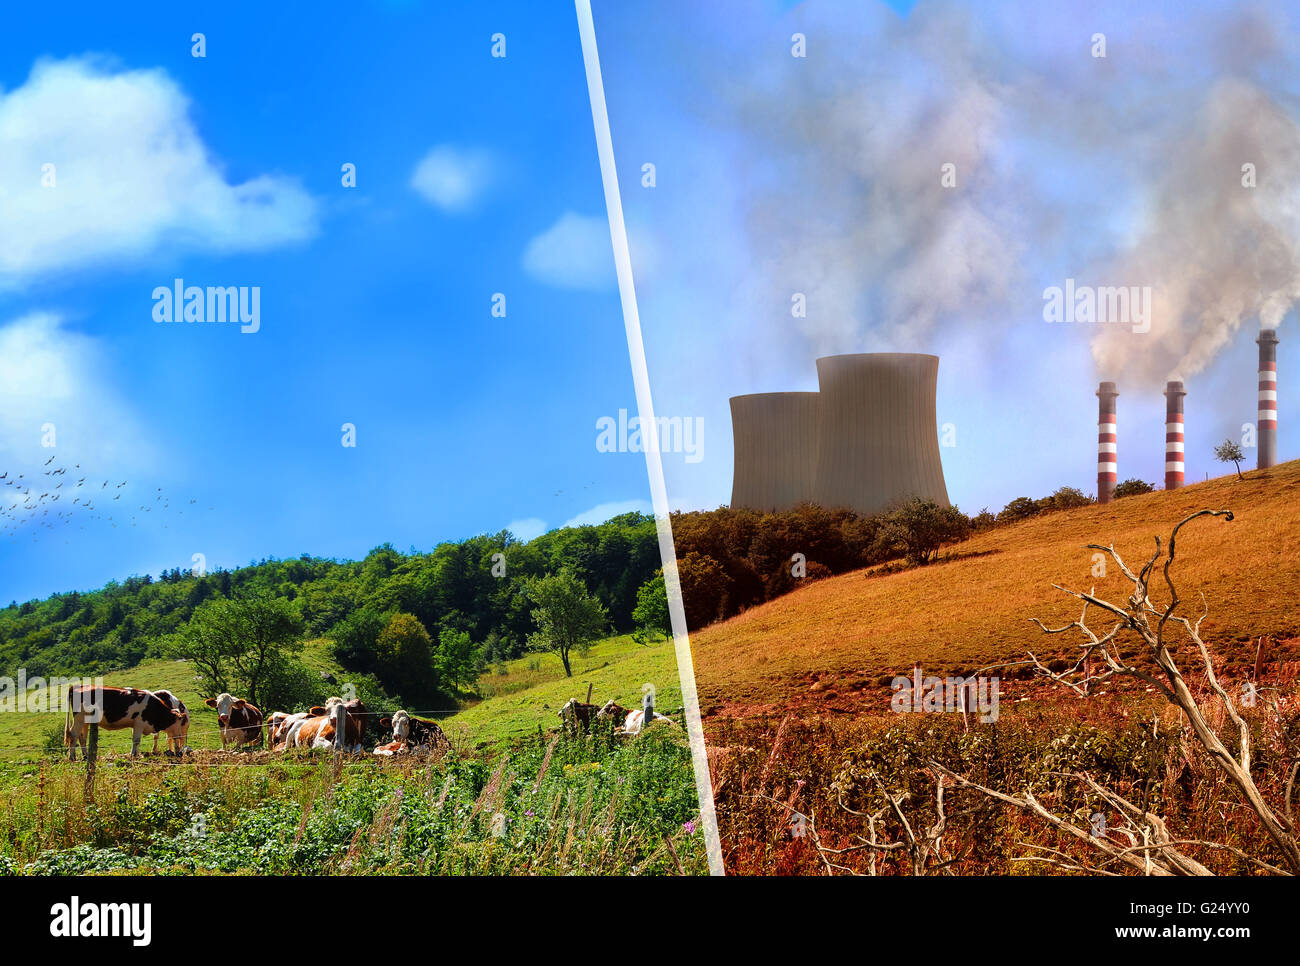 Comparison Of A Landscape Clean And Healthy And Dirty And